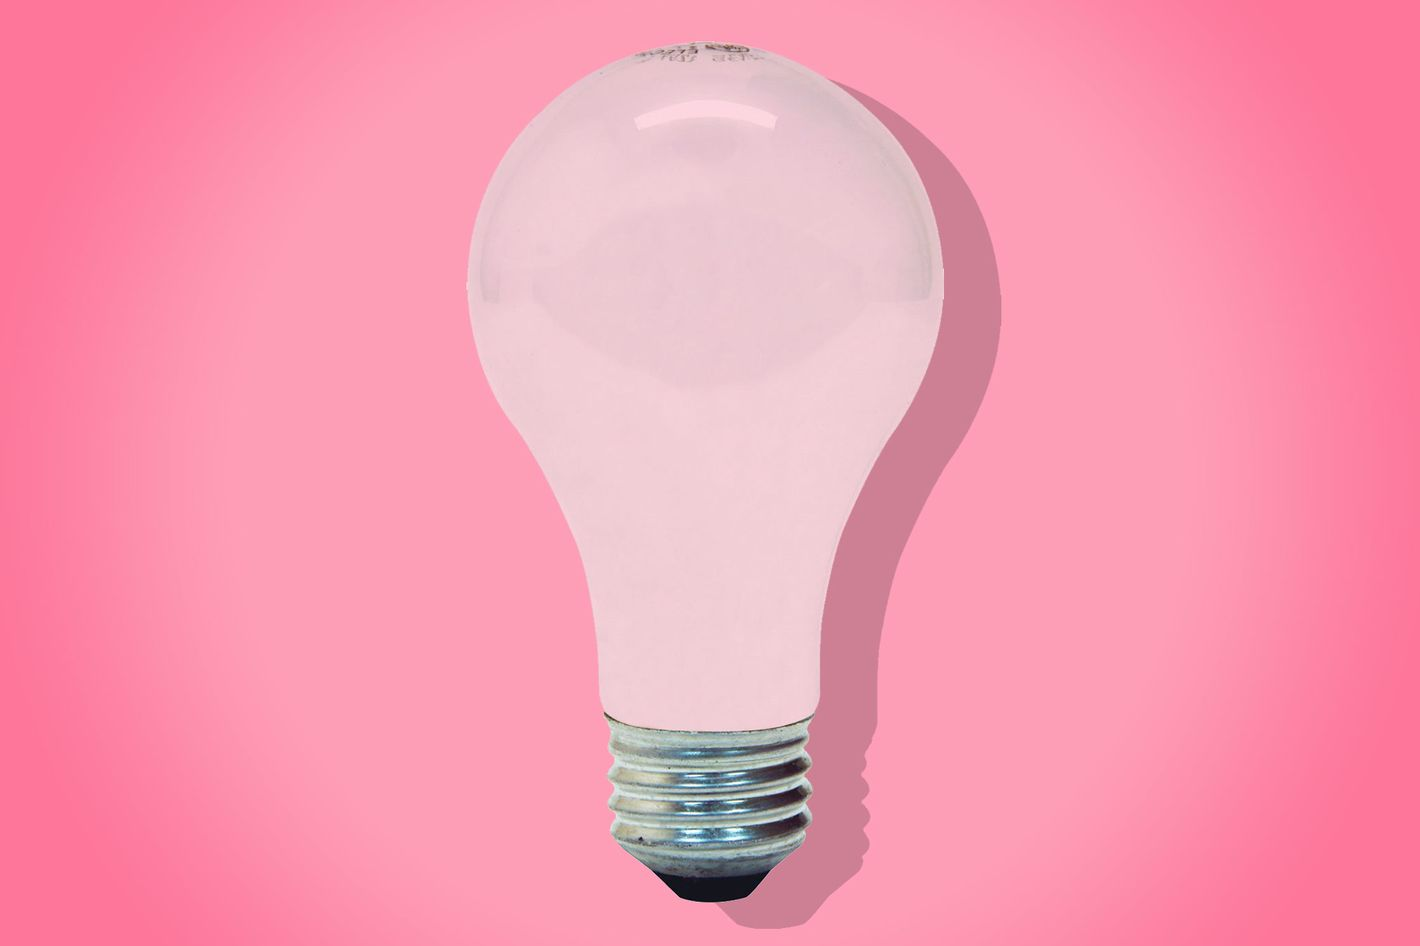 pink GE light bulbs - strategist best home decor and best light bulbs